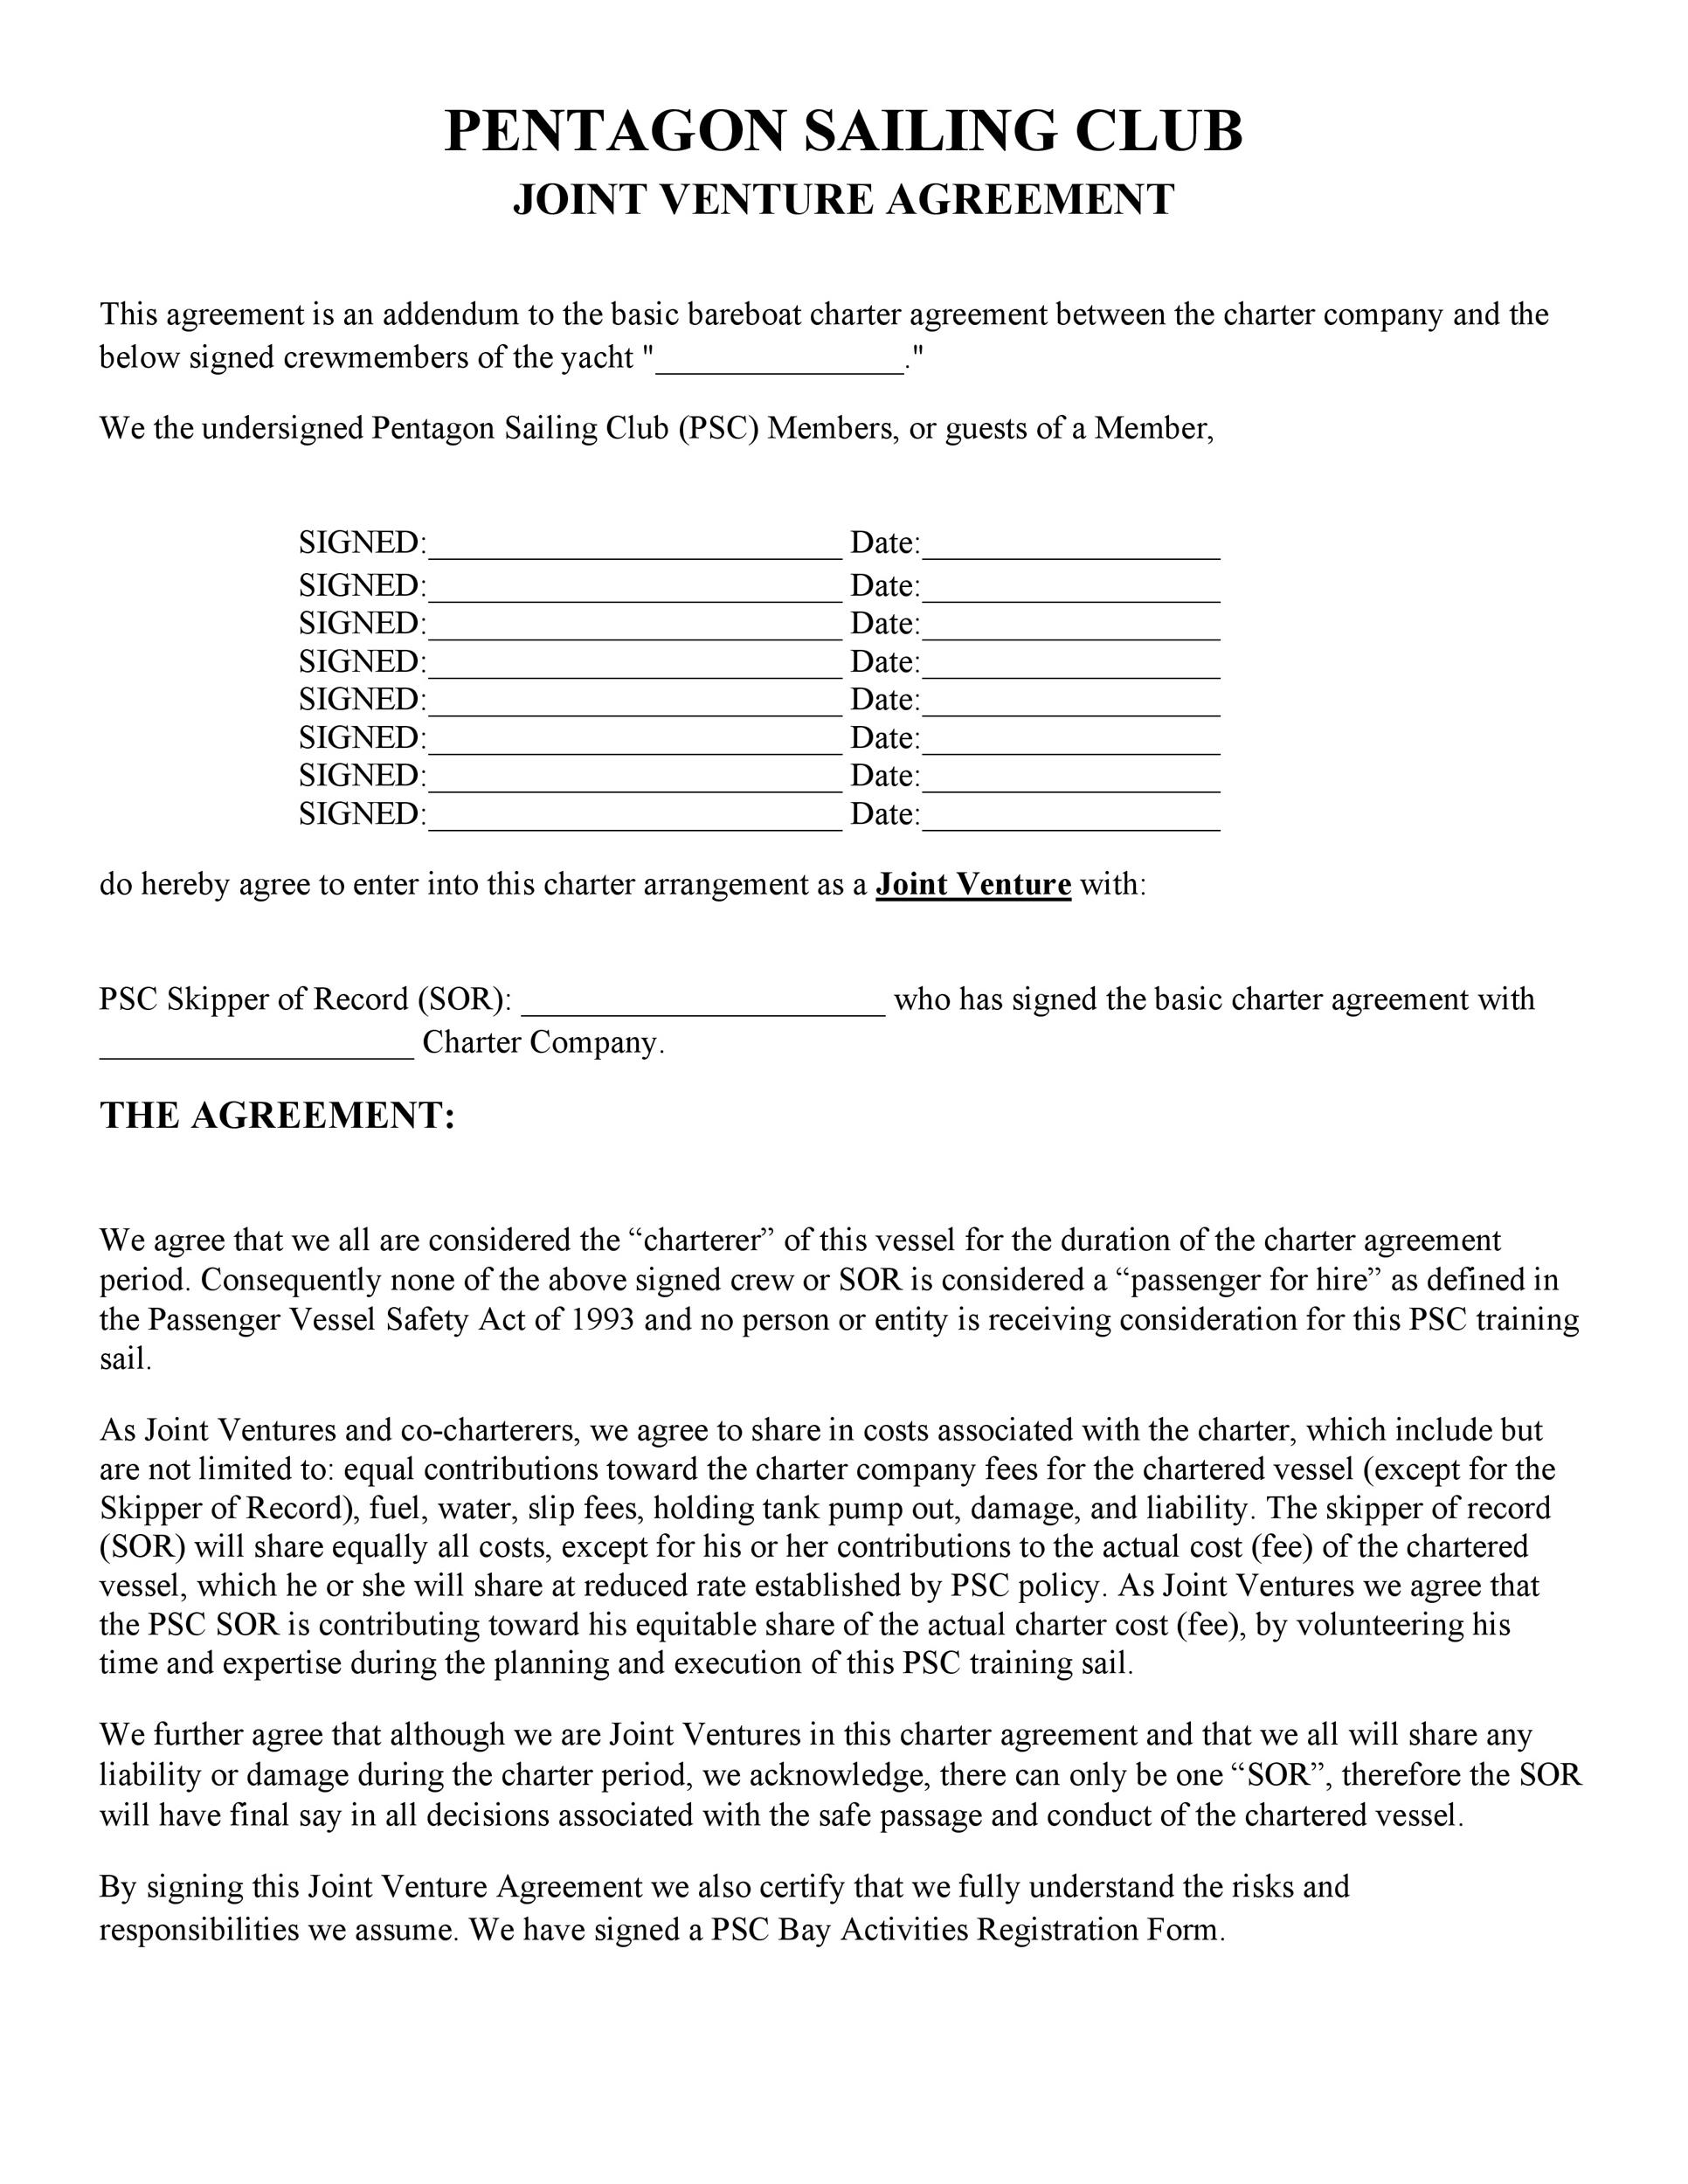 53 Simple Joint Venture Agreement Templates PDF, DOC - Template Lab - joint venture agreement